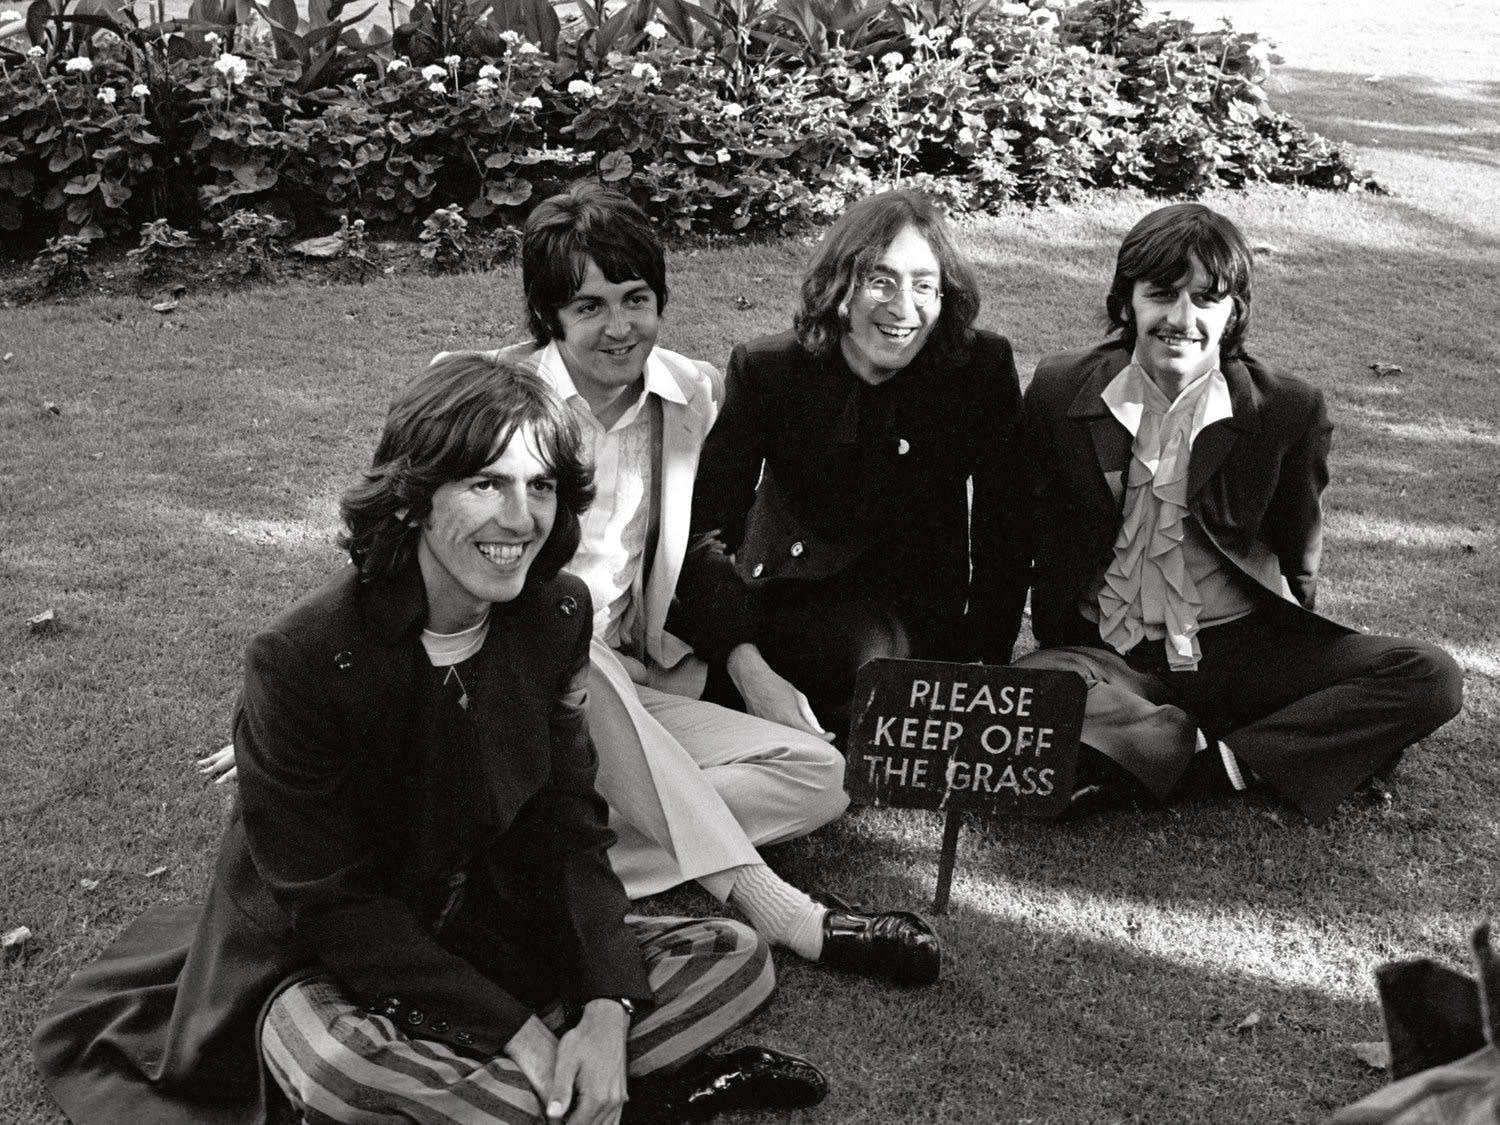 The Beatles in London on July 28, 1968.